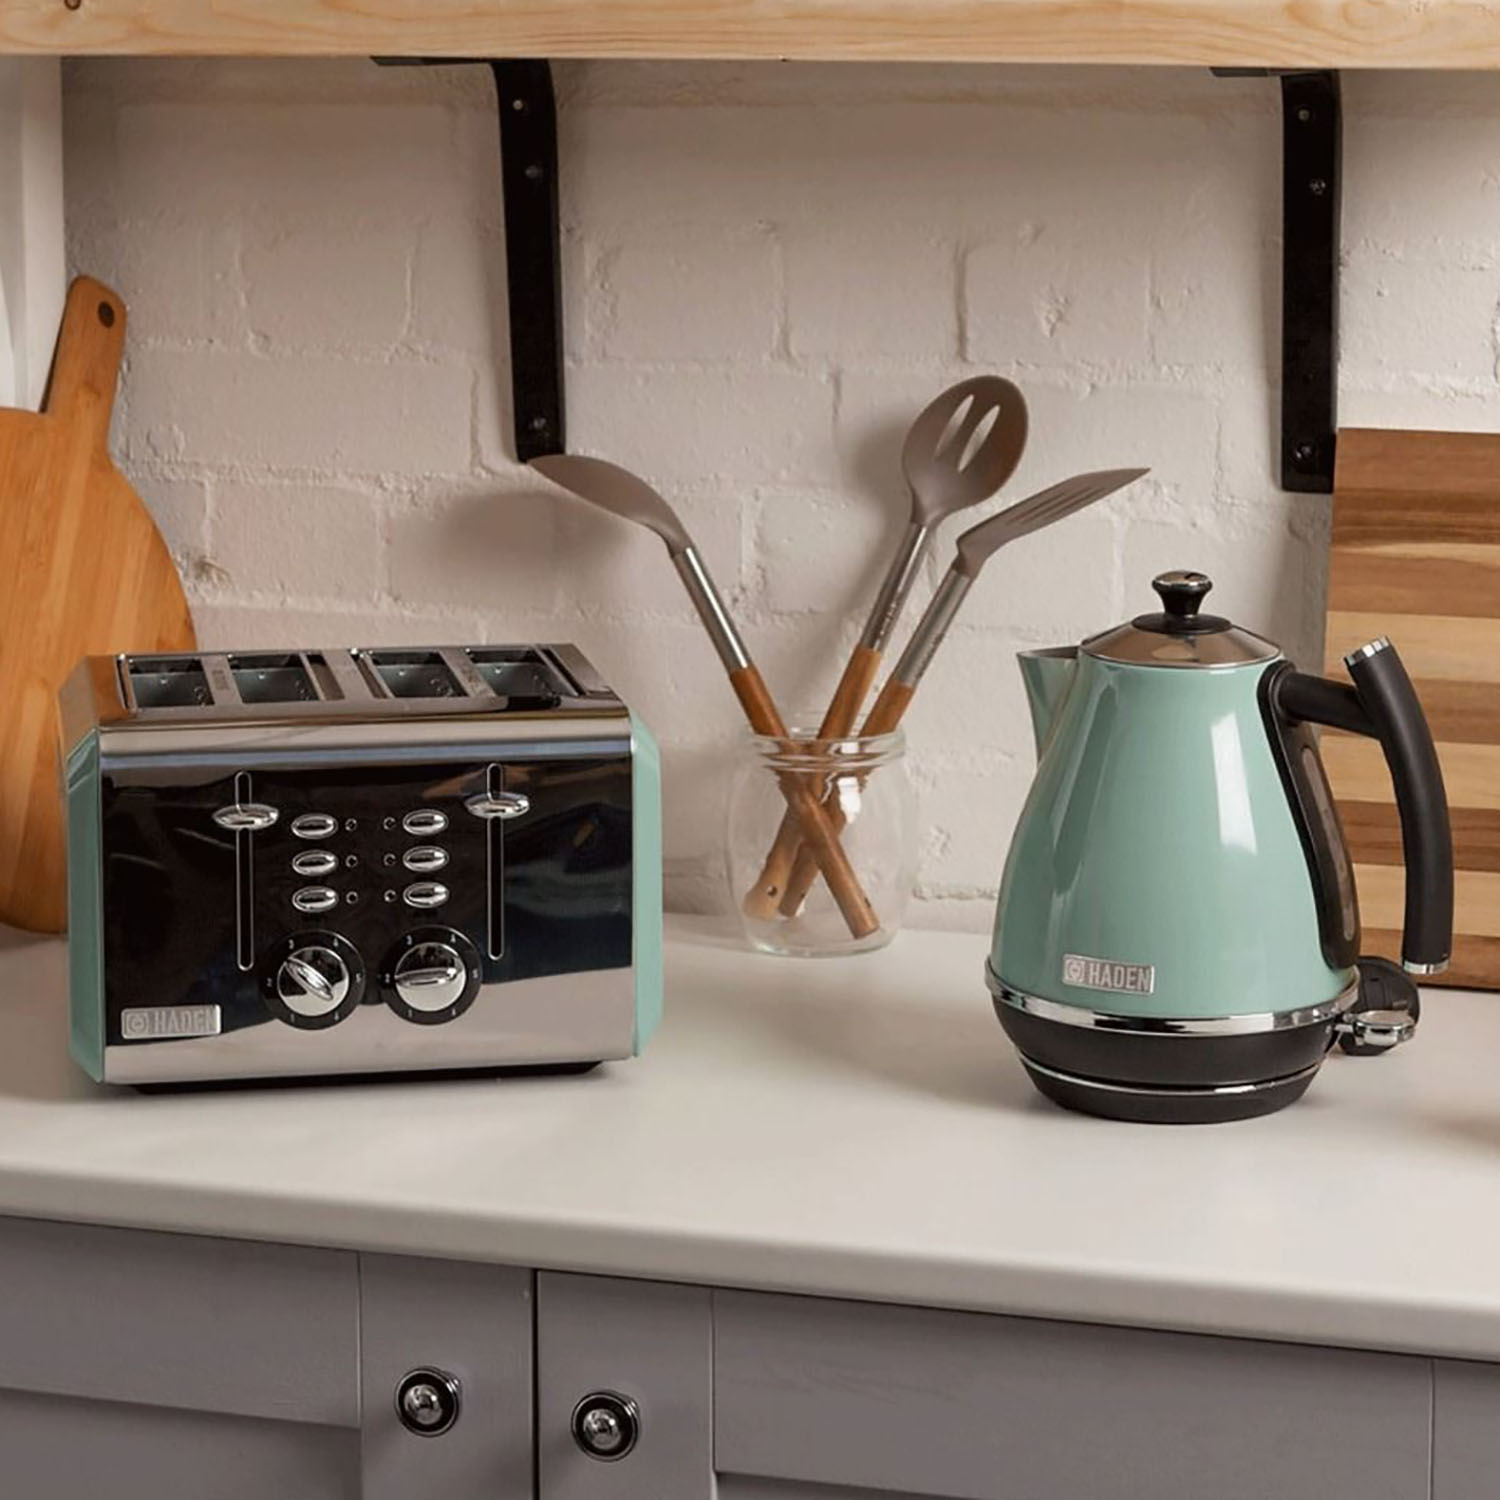 Haden Cotswold Toaster Sage